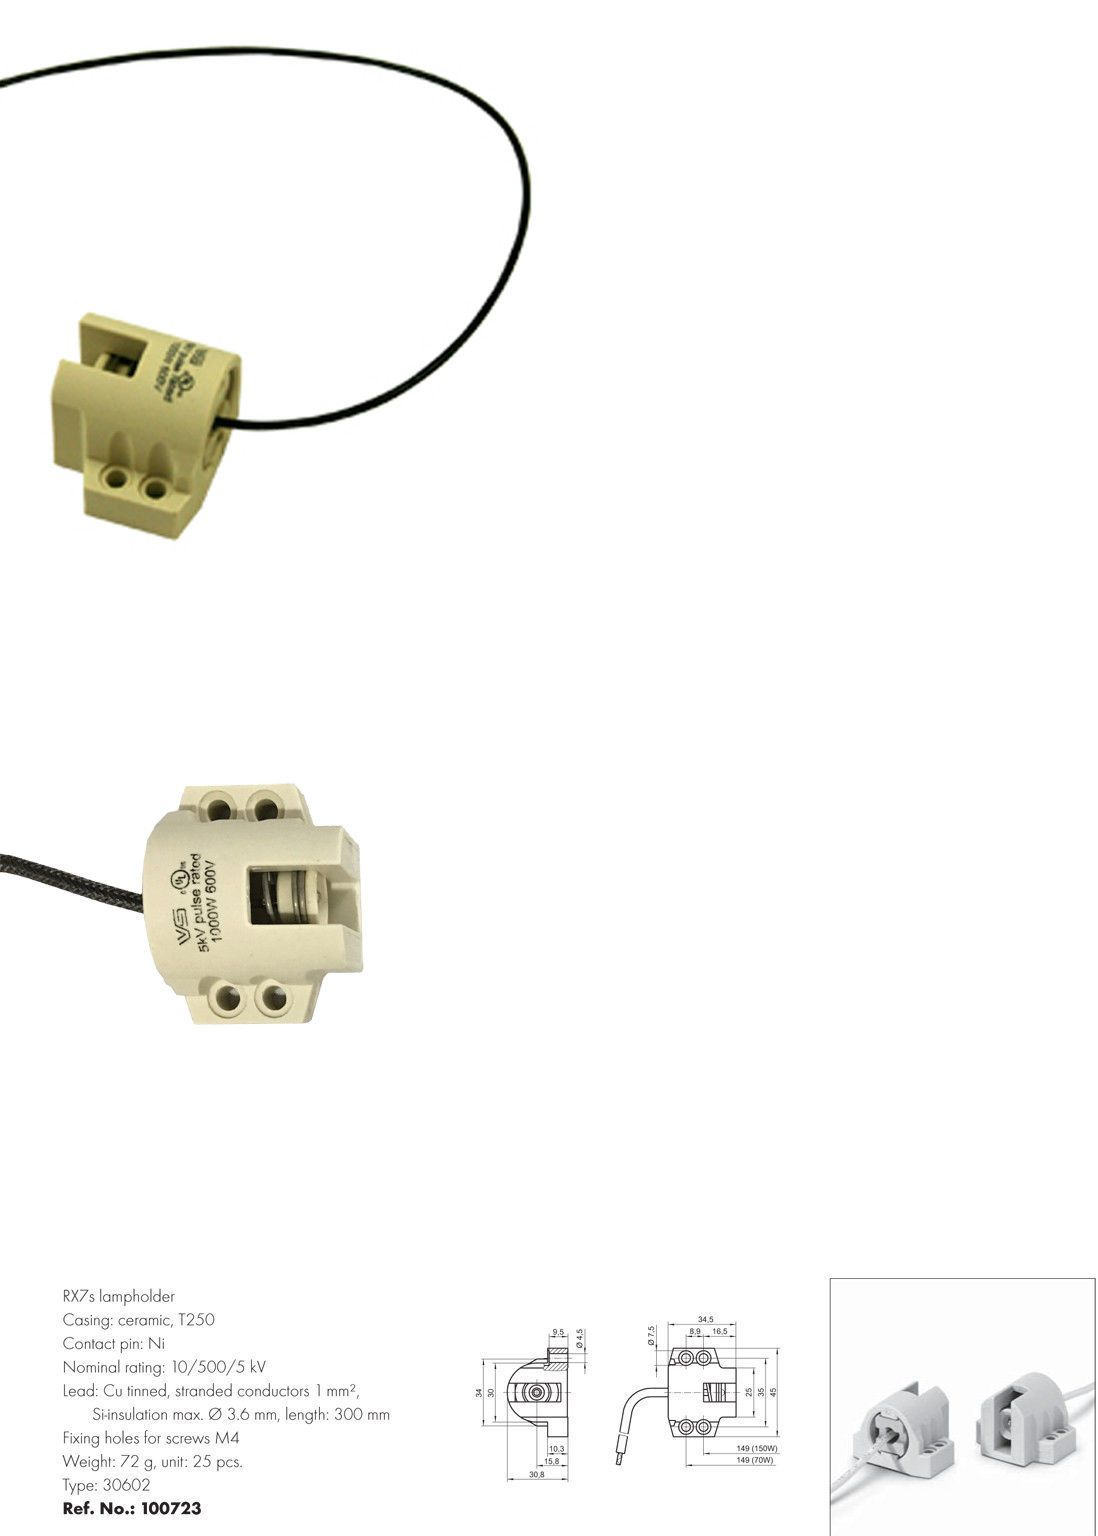 Tanning Bed Facial Lamp Holder Socket 400w Ets 20210 Ceramic R7s Wiring Other Sun Protection And 29583